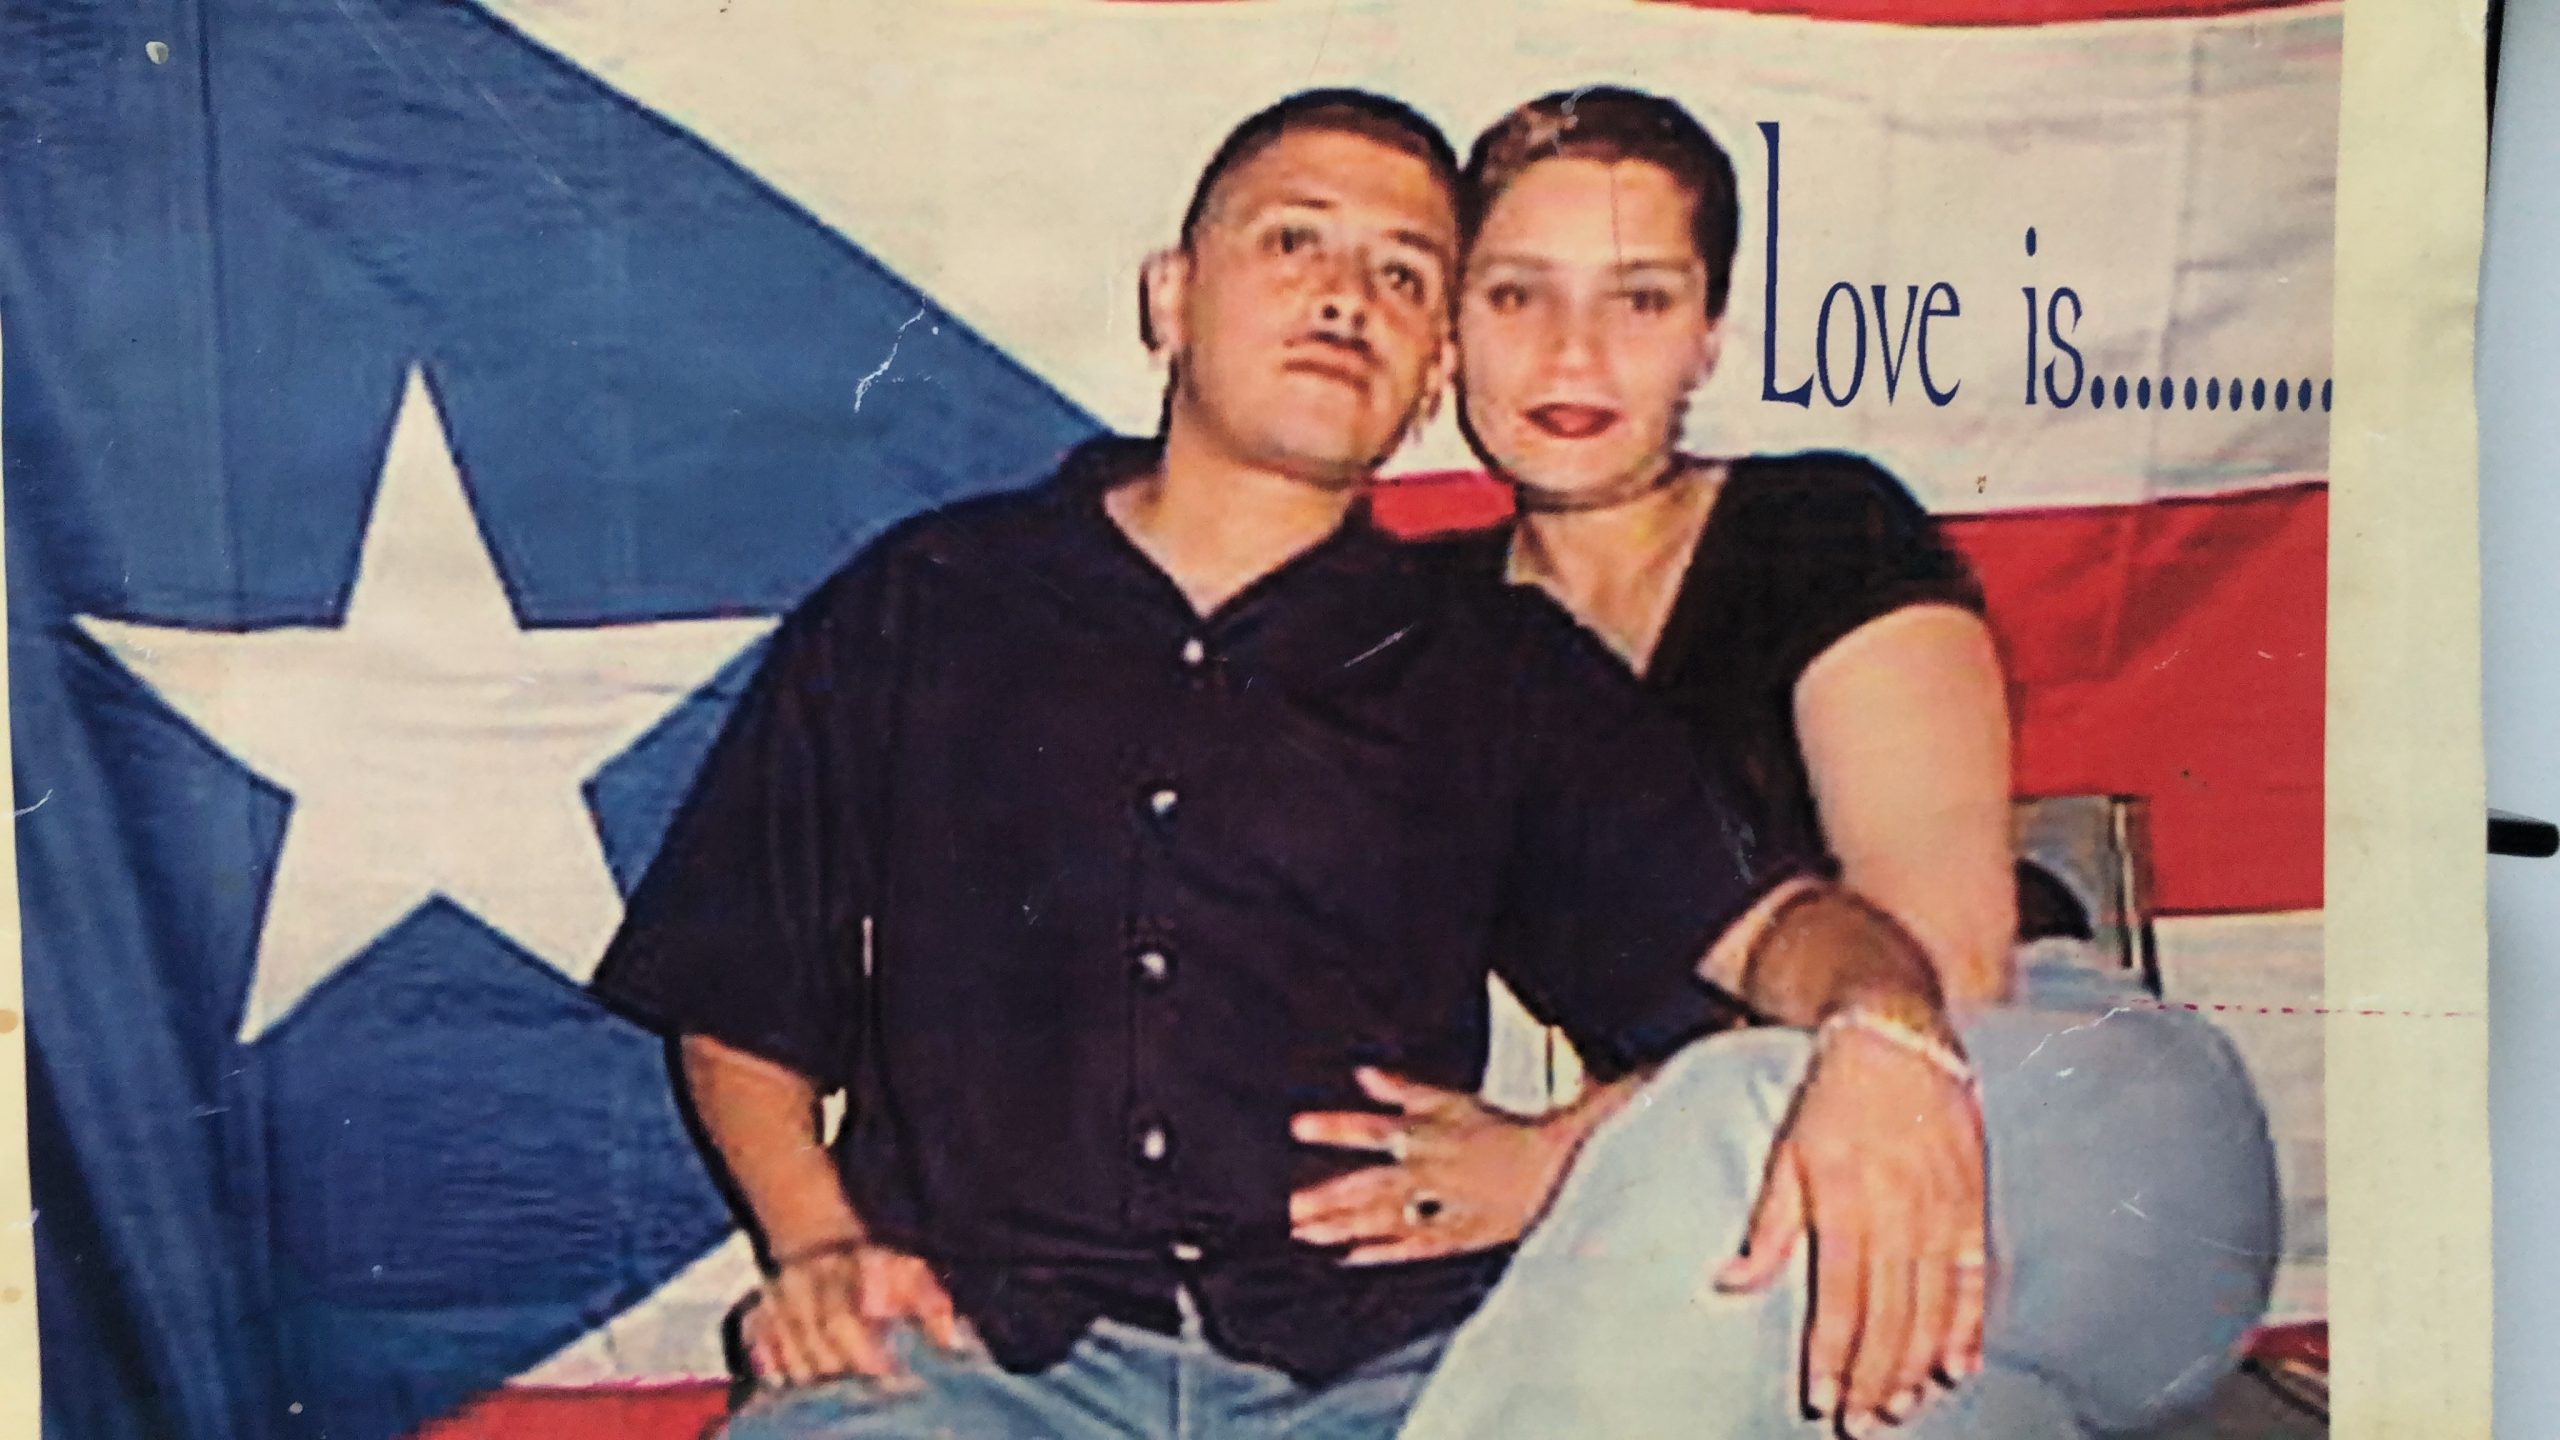 Justin Agrelo's parents, sitting happily in front of a bright Puerto Rican flag.